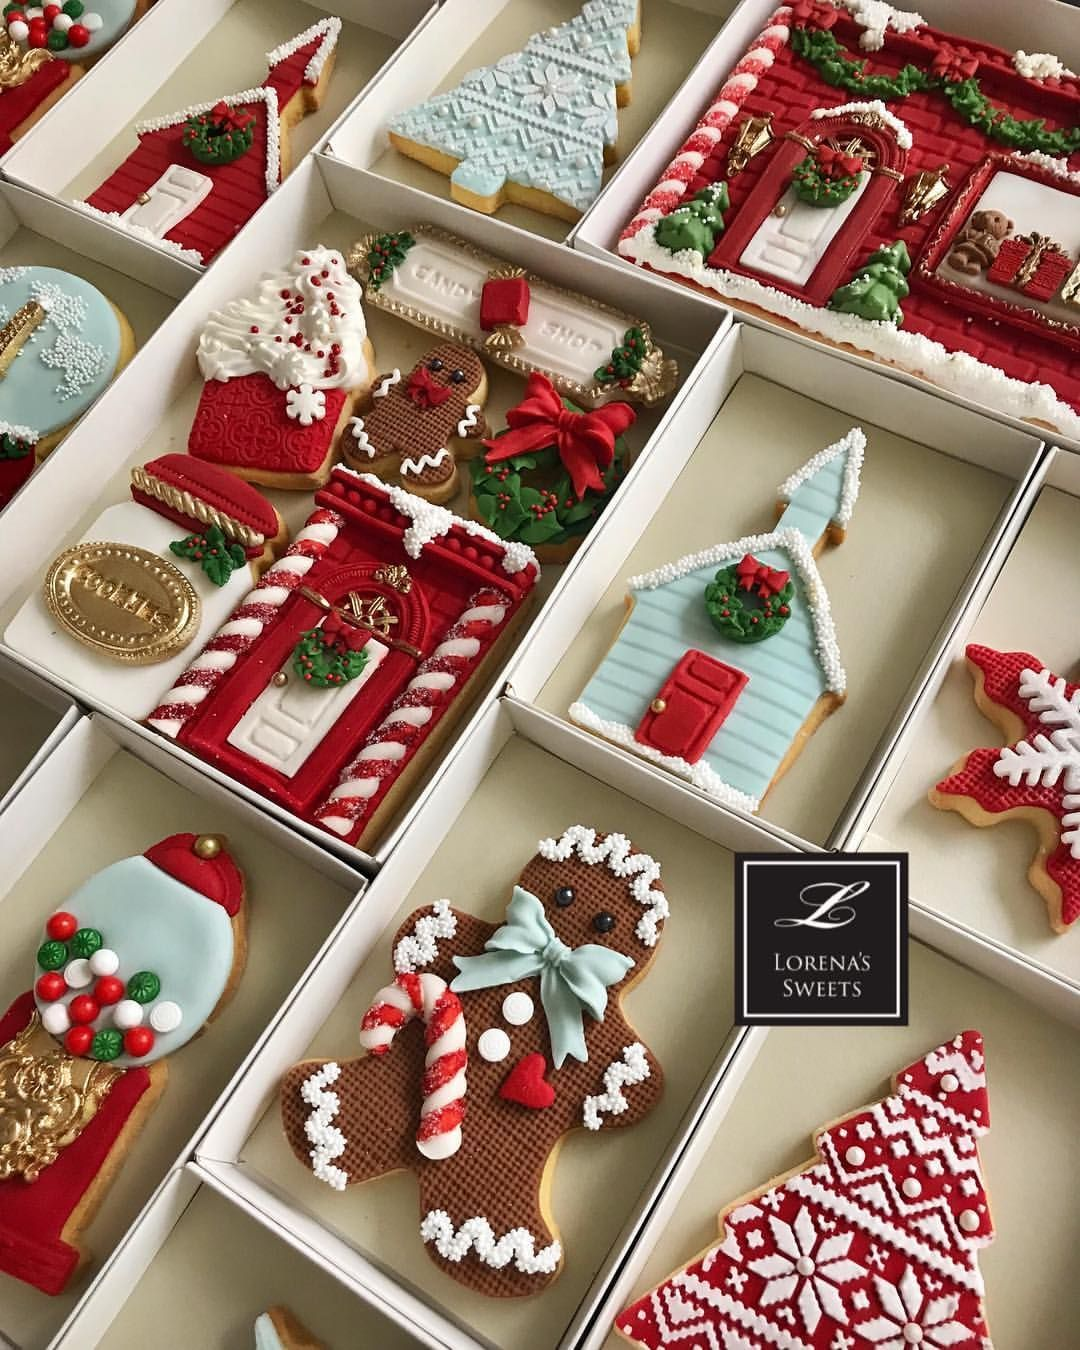 80+ Simple Christmas cookie recipes Easy to Copy Latest Fashion Trends for Women sumcoco.com 3